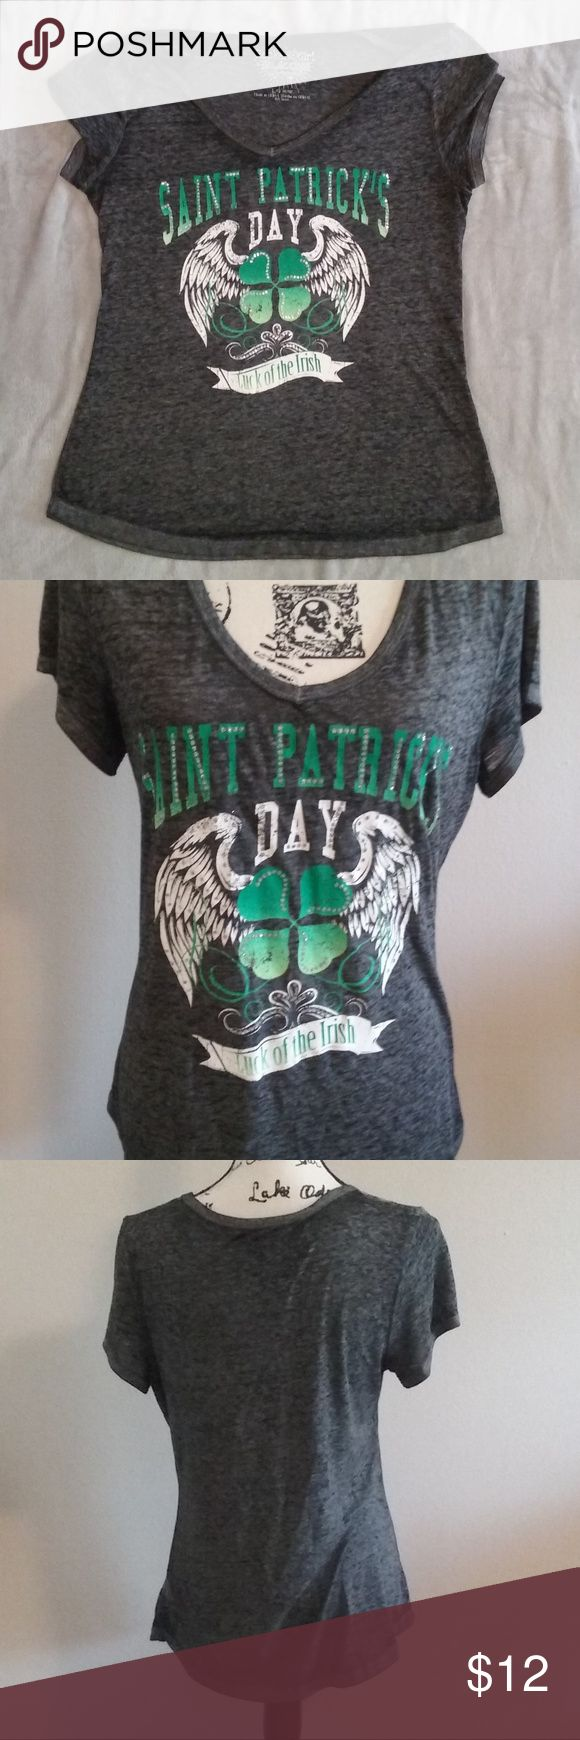 "St Patricks Day Irish Luck JRS Size L 11/13 Tshirt Nice and different gray St. Patrick's Day Luck of the Irish four leaf clover angel wings graphic t-shirt by Rocker Girl juniors size large 11/13, measures approximately 26.5"" long from back collar and 18"" underarm to underarm.  51% polyester and 49% cotton blend material.    Some shiny accents on lettering with distressed look graphic. Rocker Girl Tops Tees - Short Sleeve"